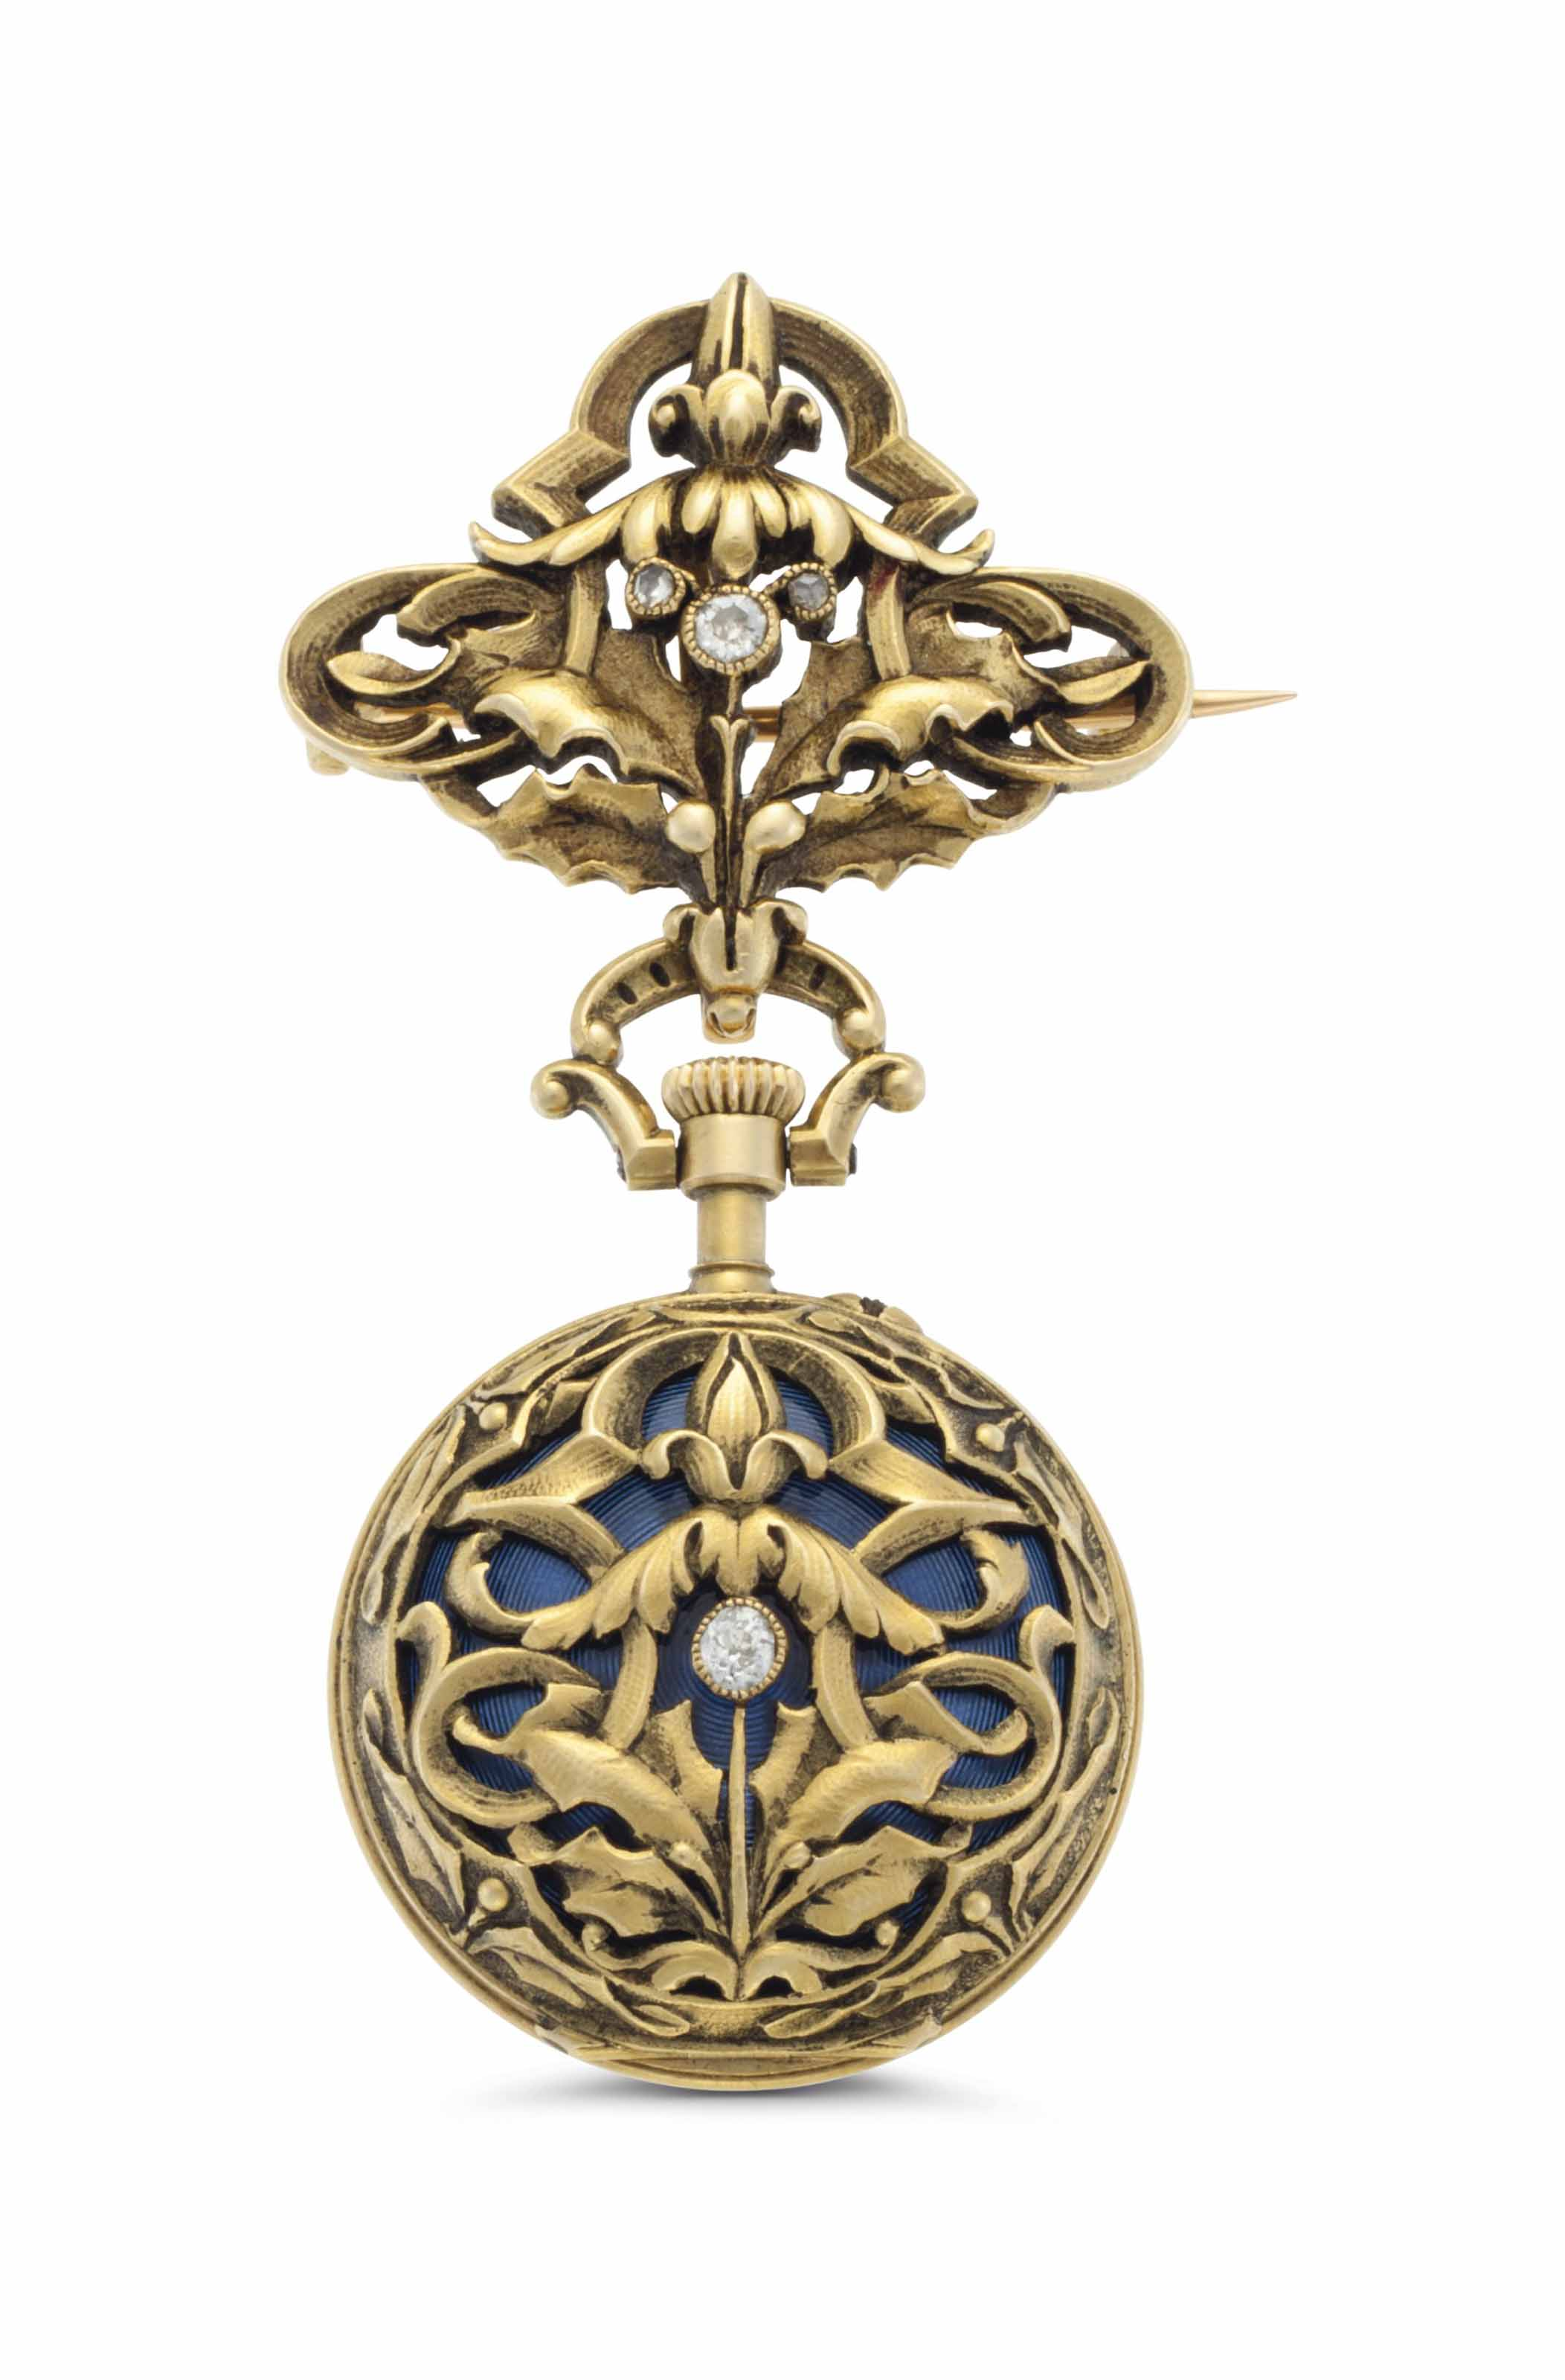 Swiss. A Lady's 18k Gold, Enamel and Diamond-set Openface Keyless Lever Pendant Watch